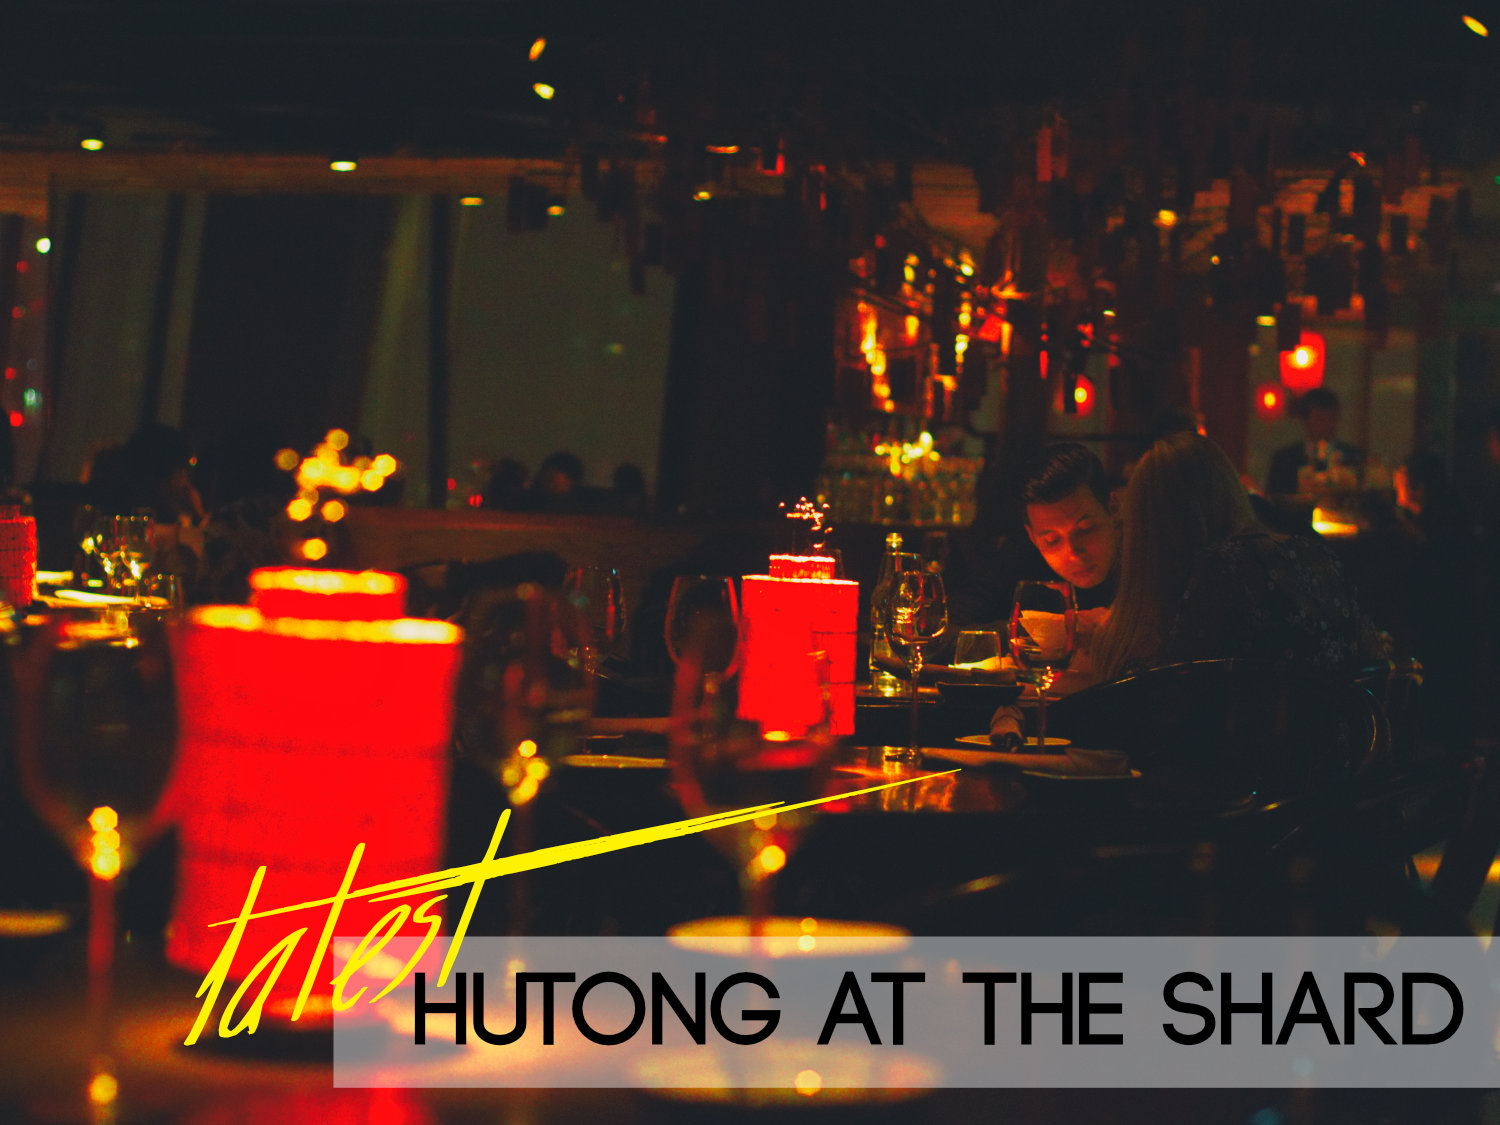 Hutong at The Shard Review